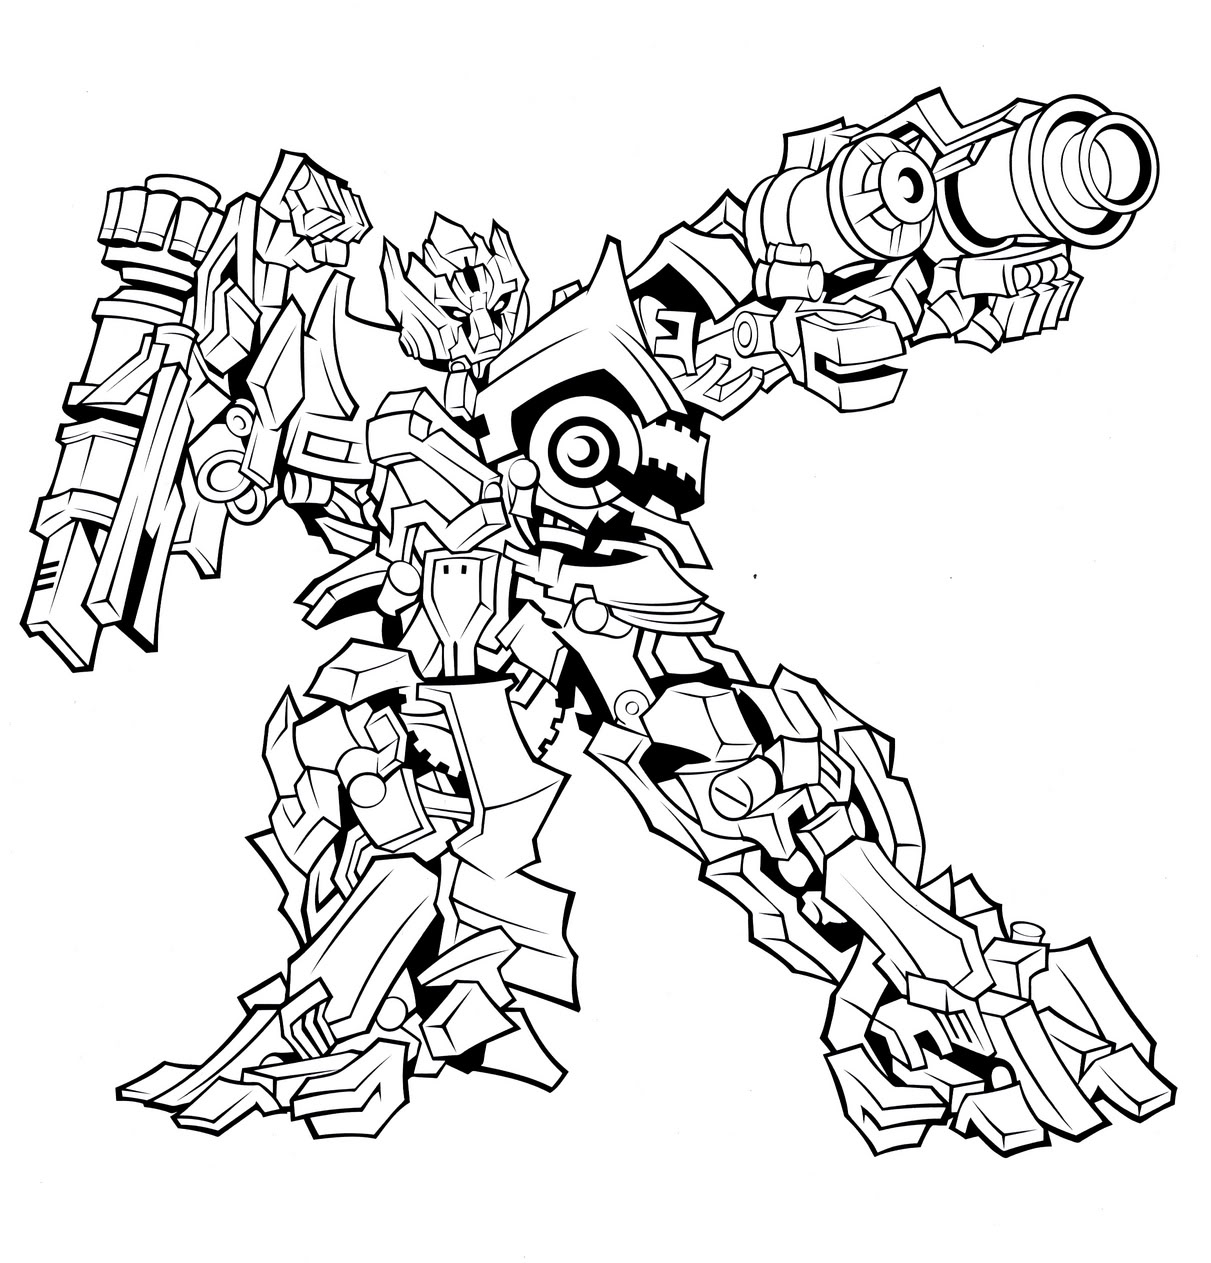 image regarding Transformers Printable Coloring Pages titled No cost Printable Transformers Coloring Web pages For Youngsters